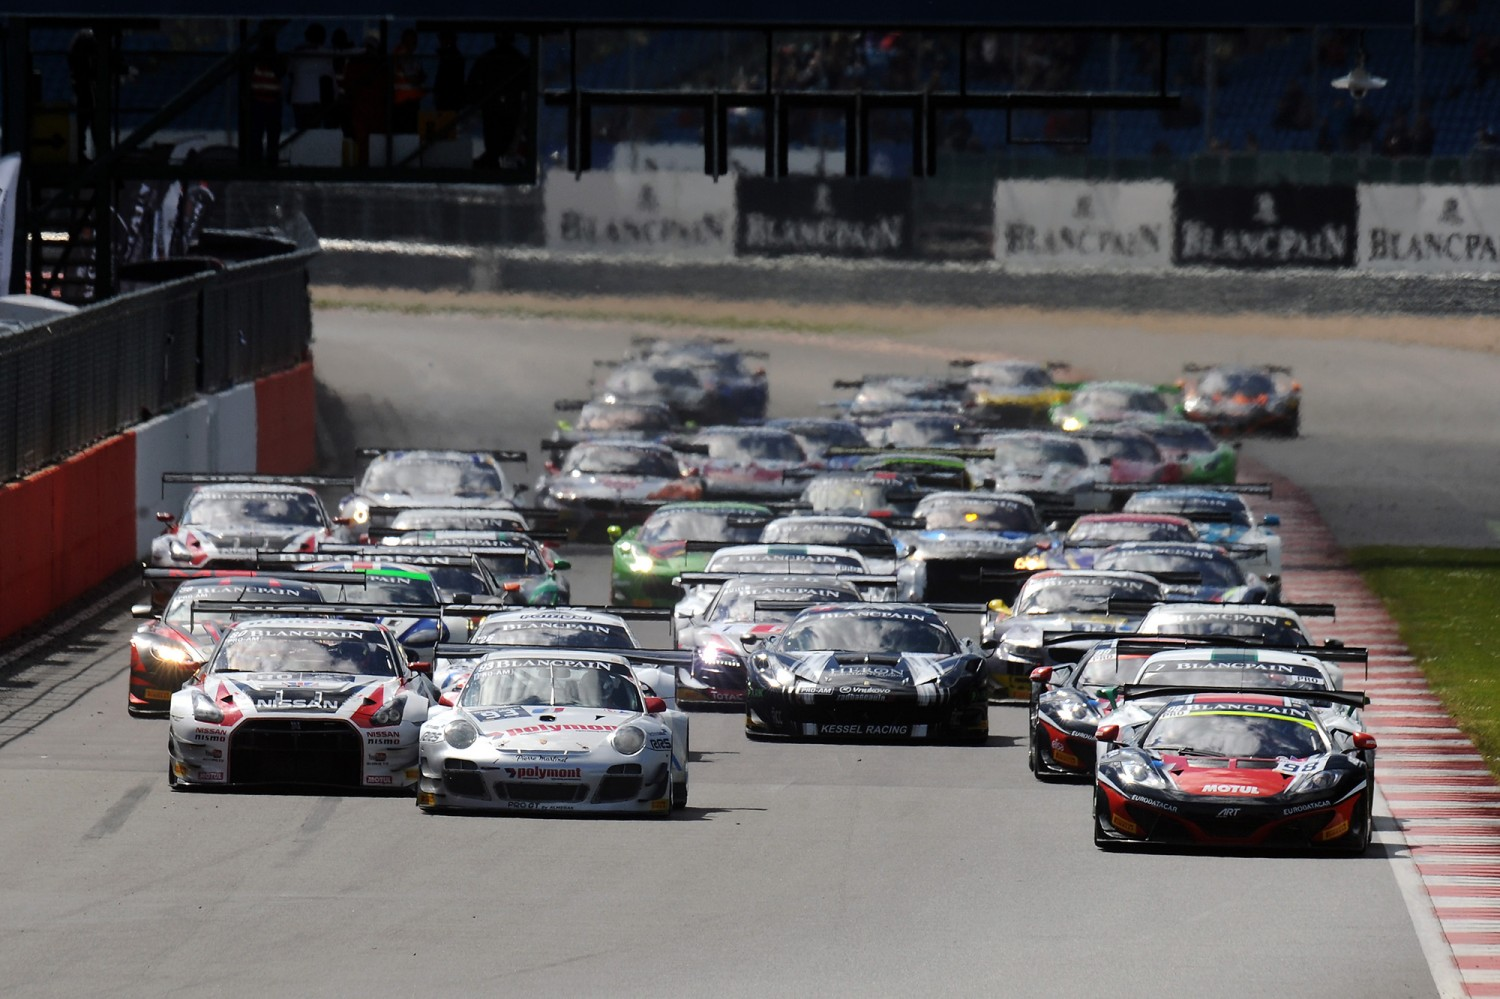 2014 Blancpain Endurance Series proves to be a Grand Cru